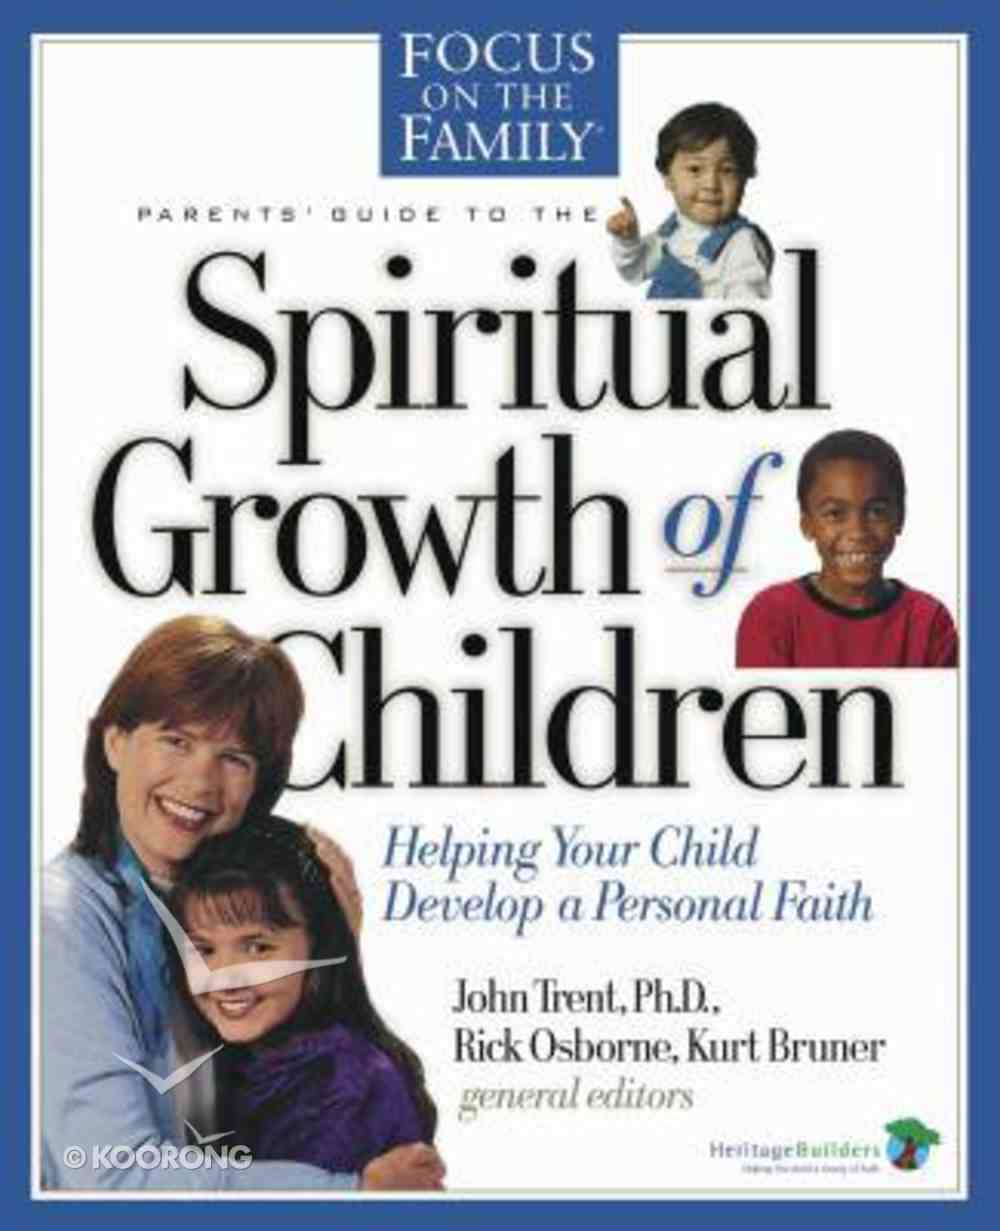 Parents' Guide to the Spiritual Growth of Children Hardback